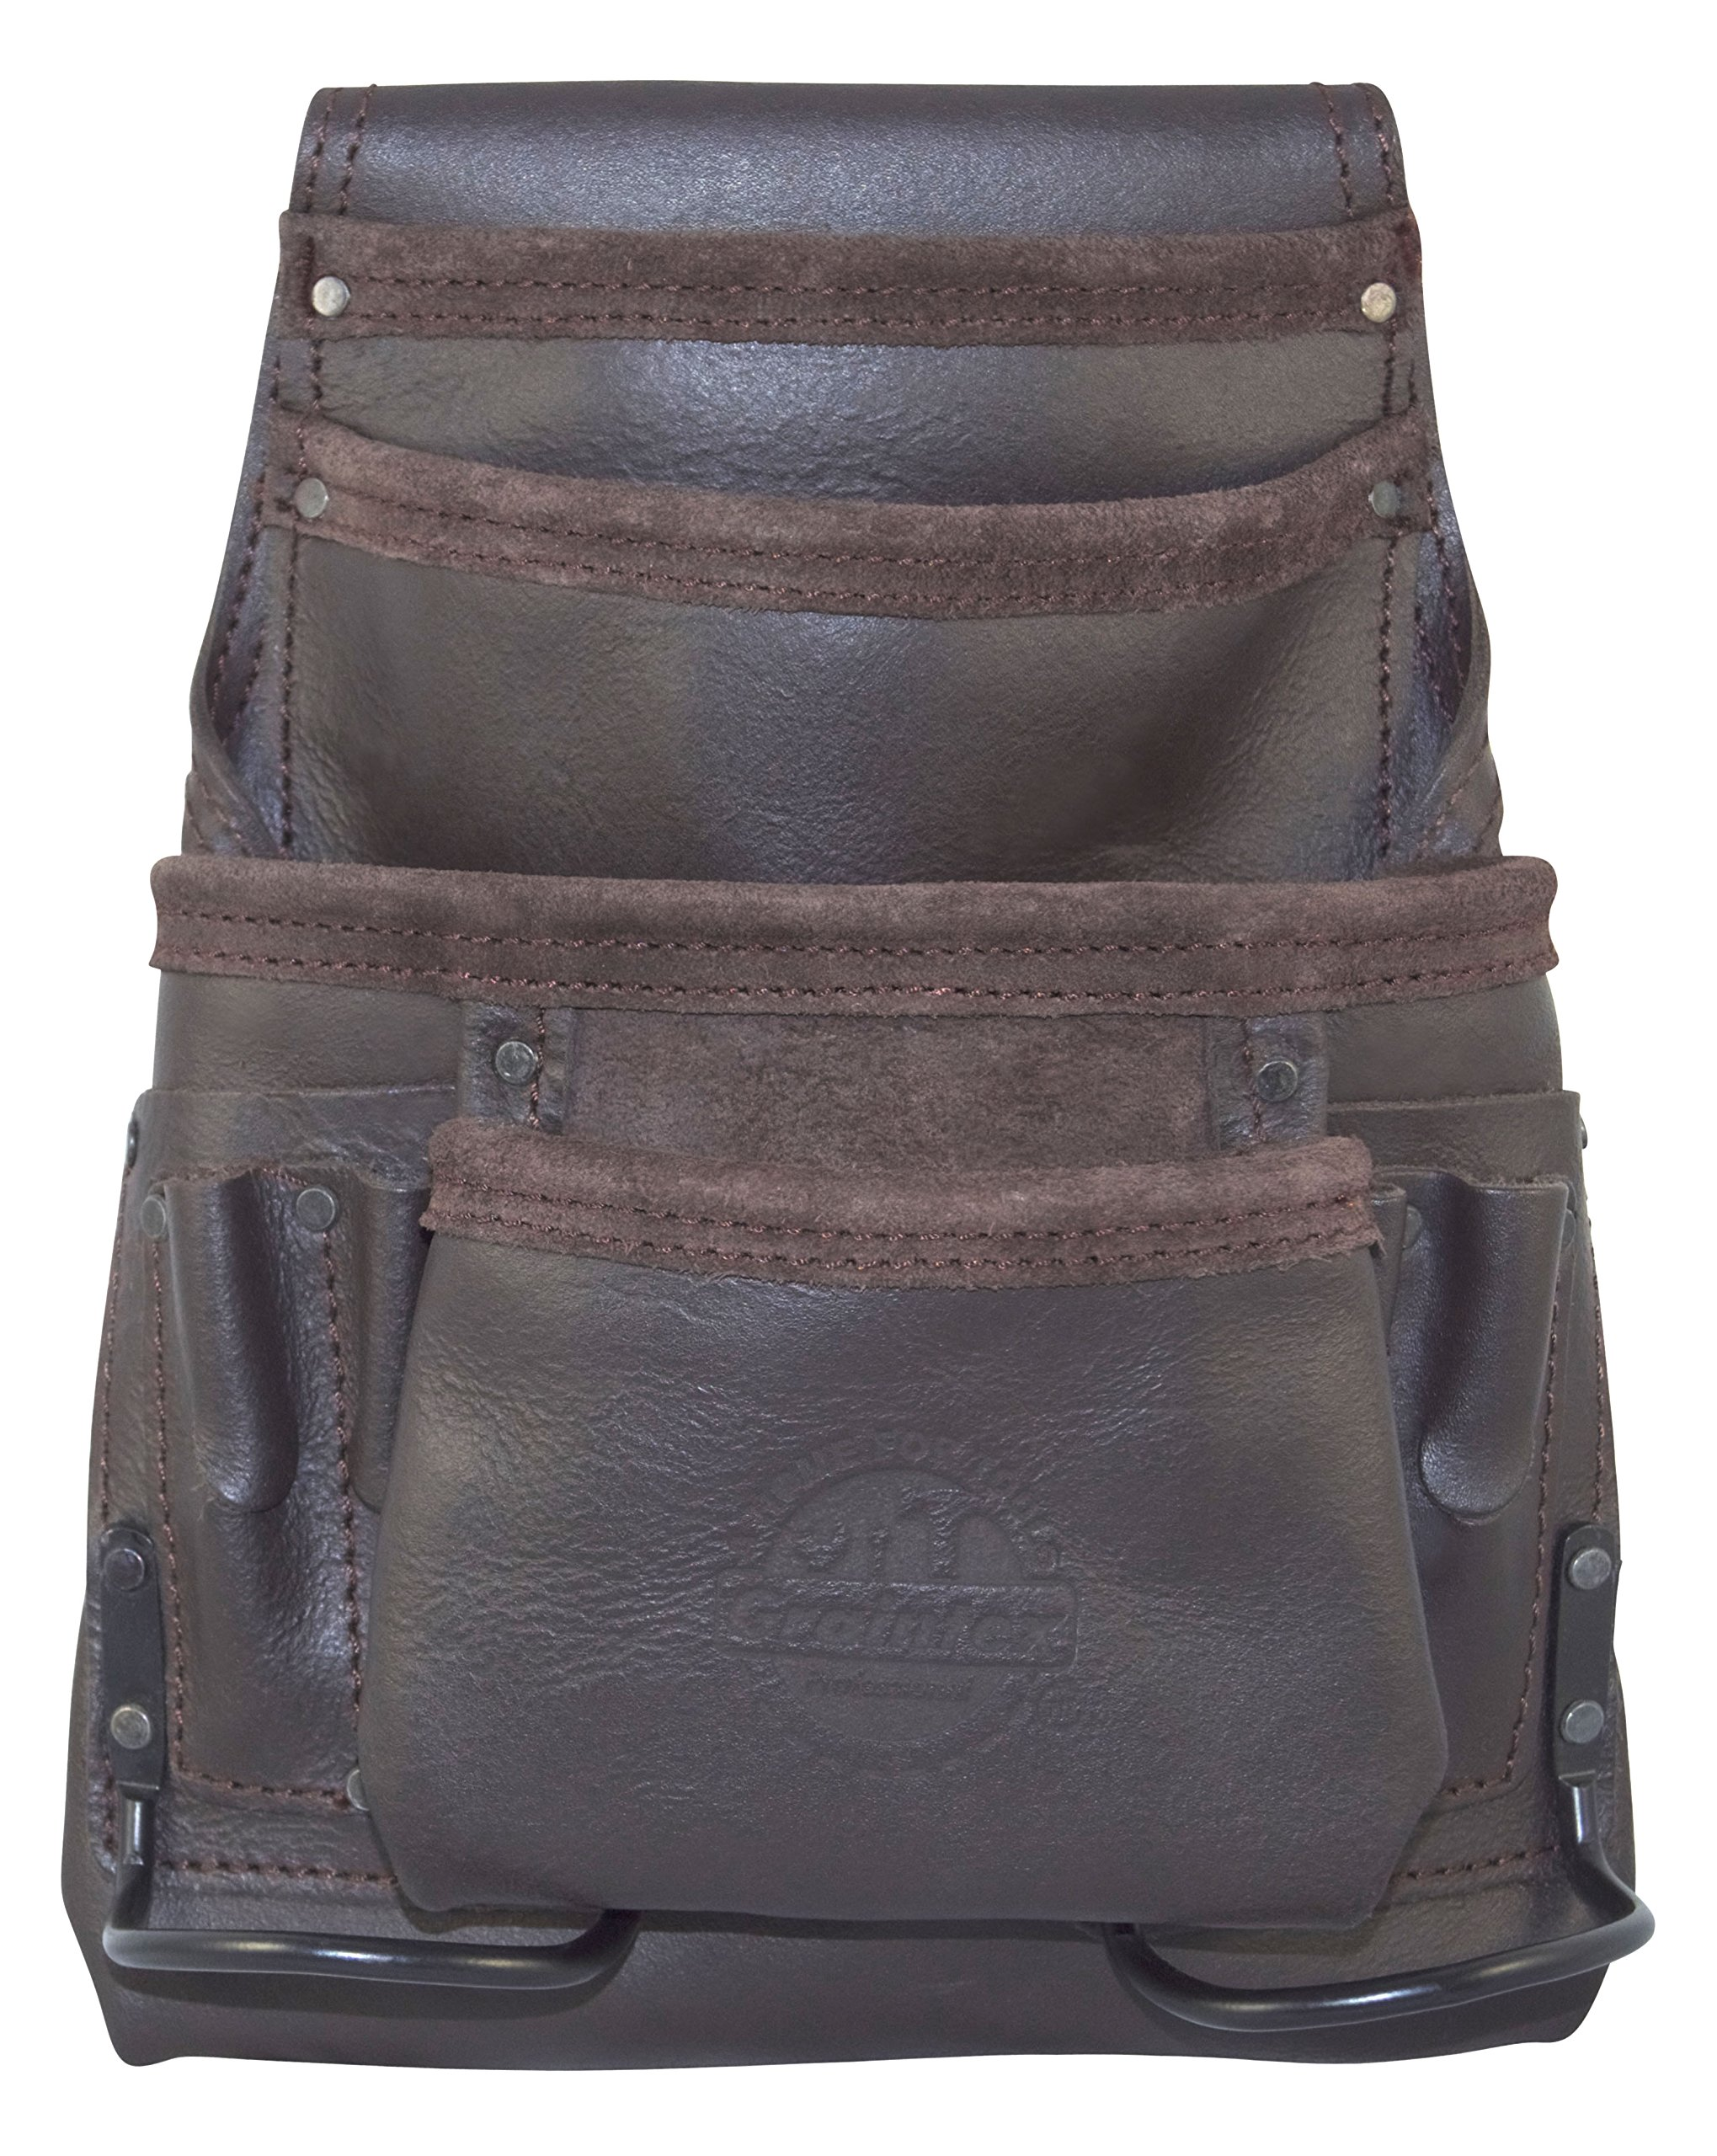 Graintex OS2250 10 Pocket Oil Tanned Leather Nail & Tool Pouch with 2 Hammer Holders